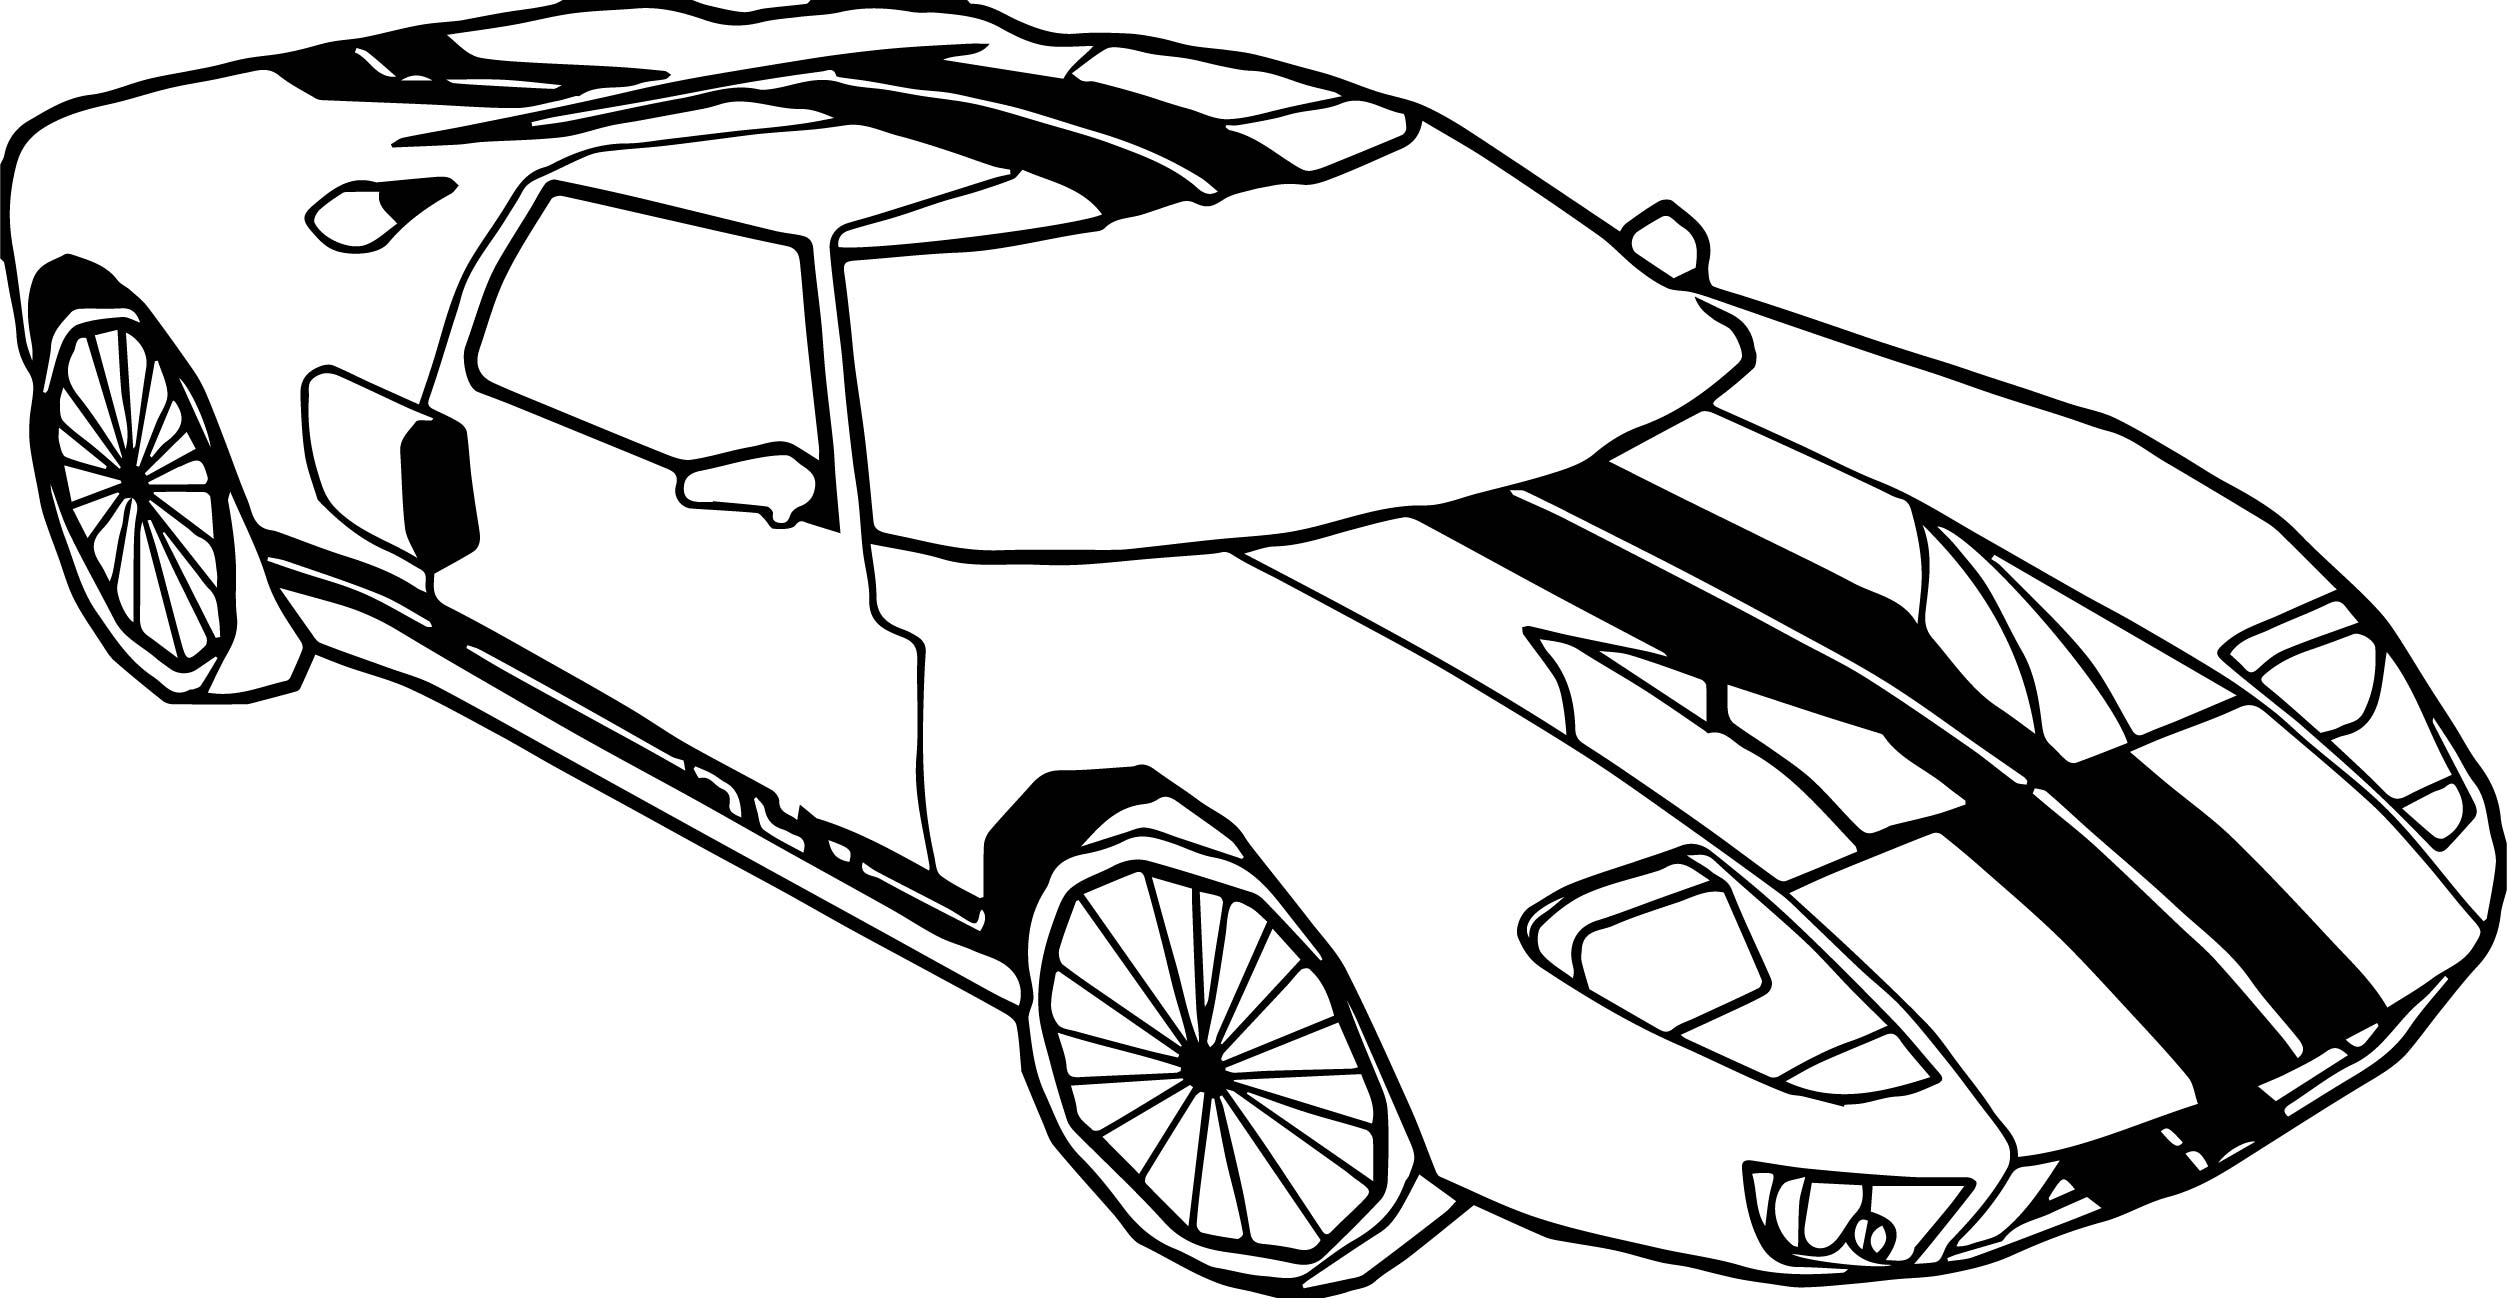 Viper Car Coloring Pages : Fast car viper coloring page wecoloringpage